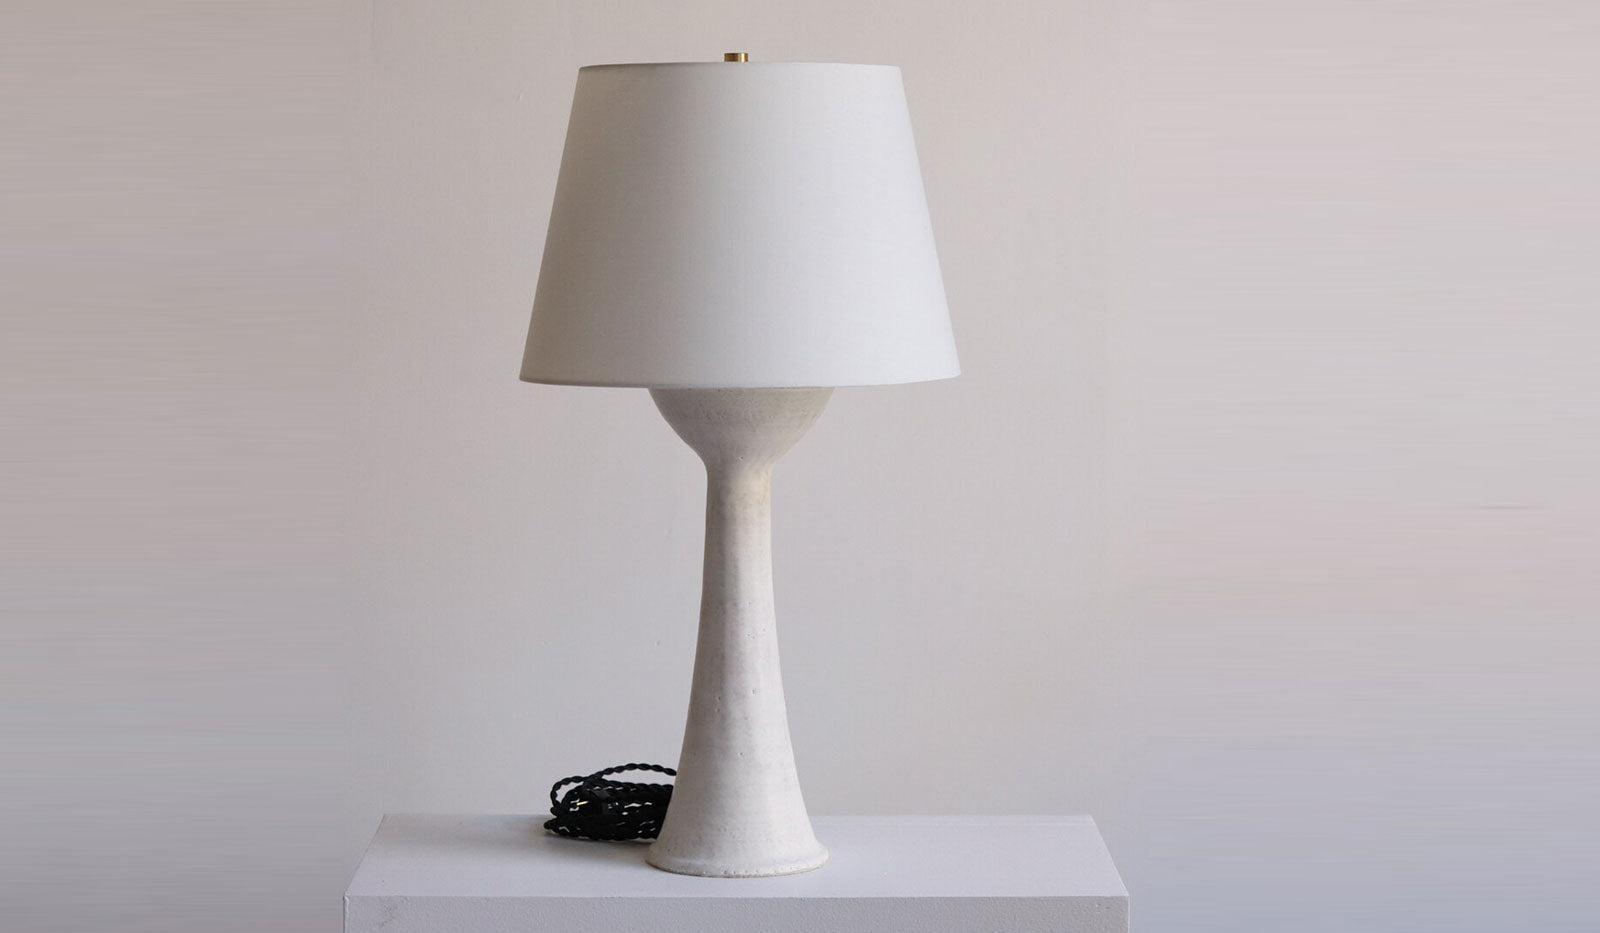 Danny Kaplan Ceramic Seneca Table Lamp